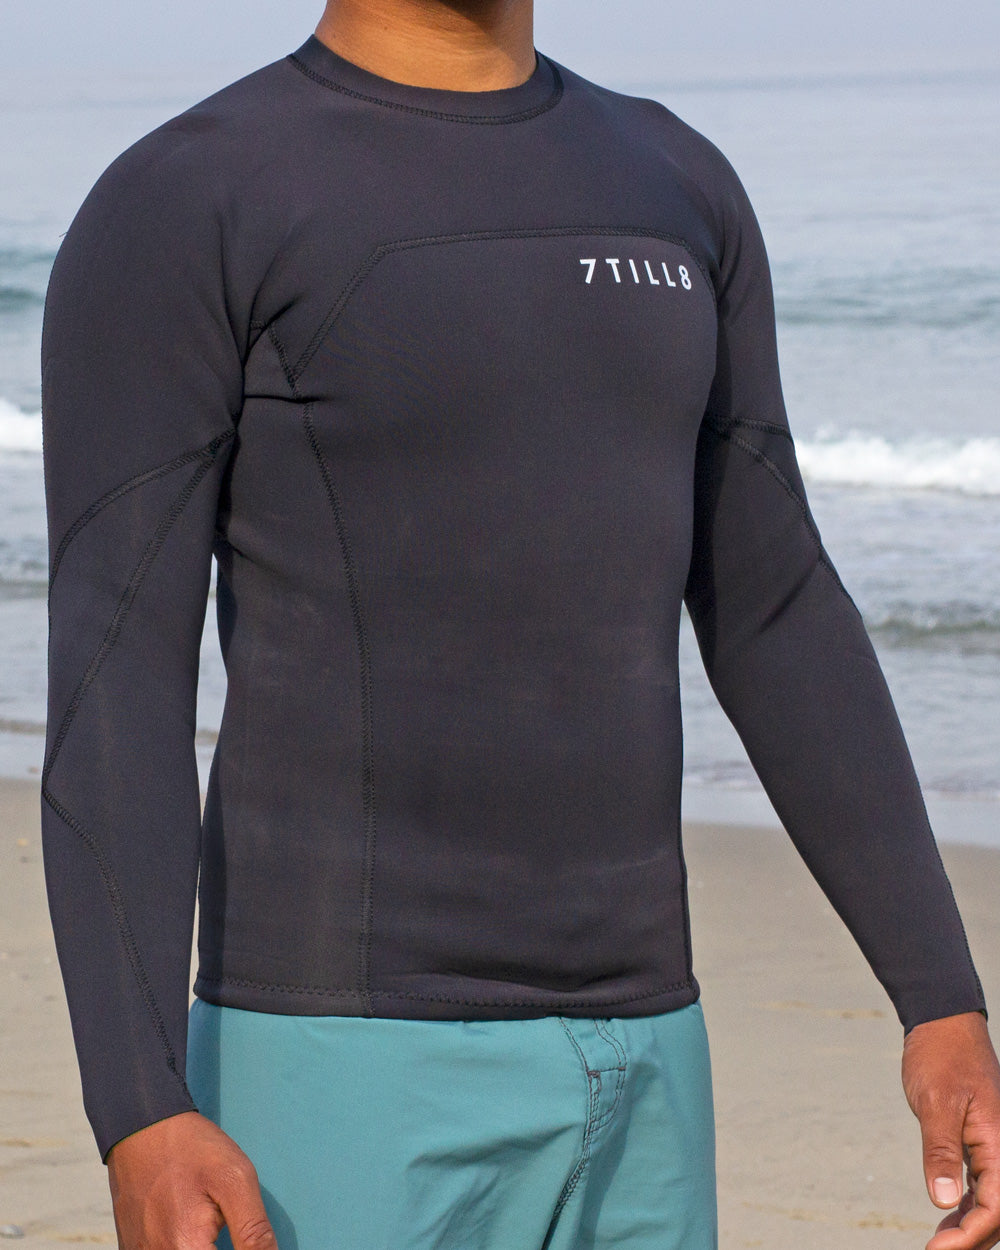 Surf Pullover Top - 7TILL8 Wetsuits